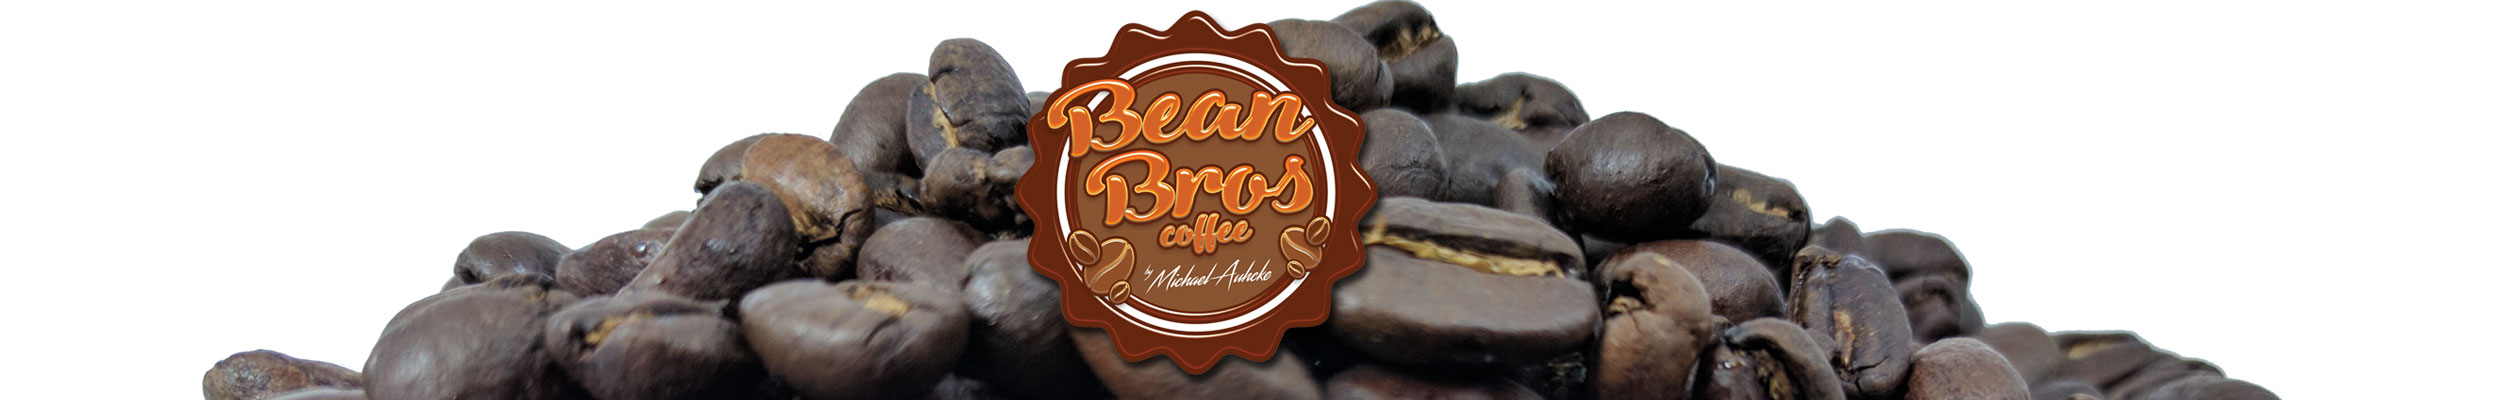 Bean Bros Coffee